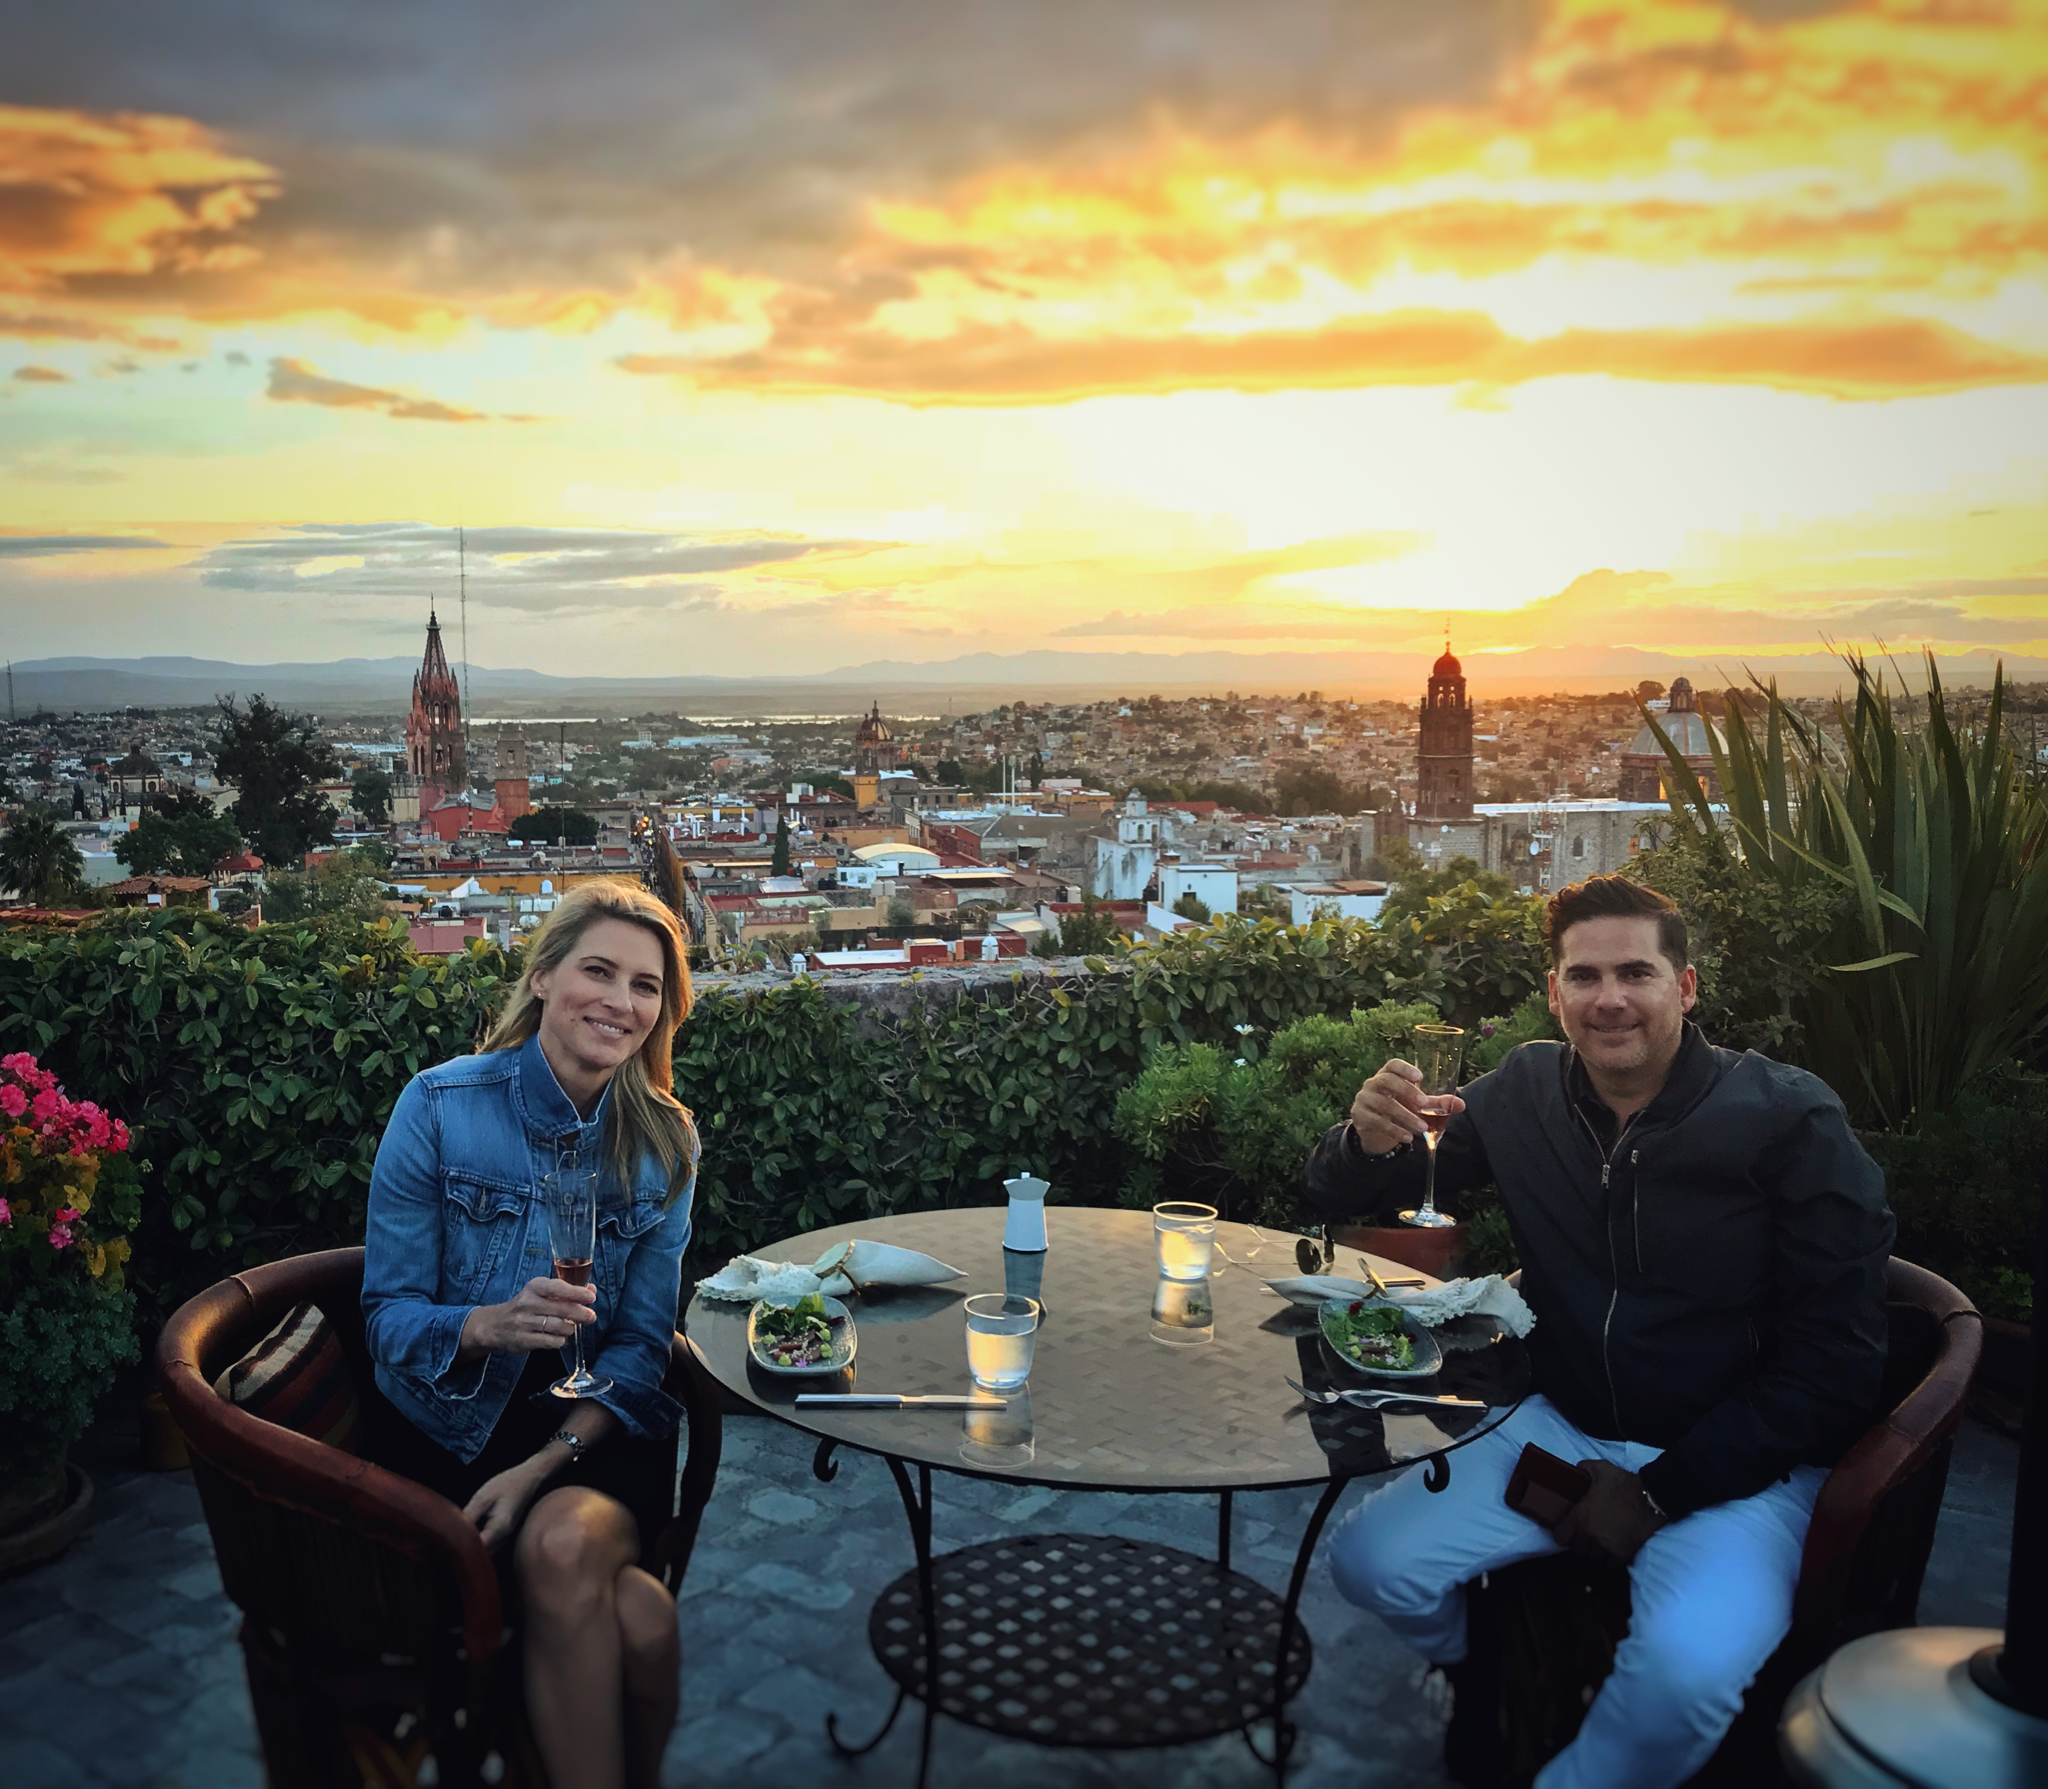 Engagement Dinner in San Miguel de Allende, Mexico 2018